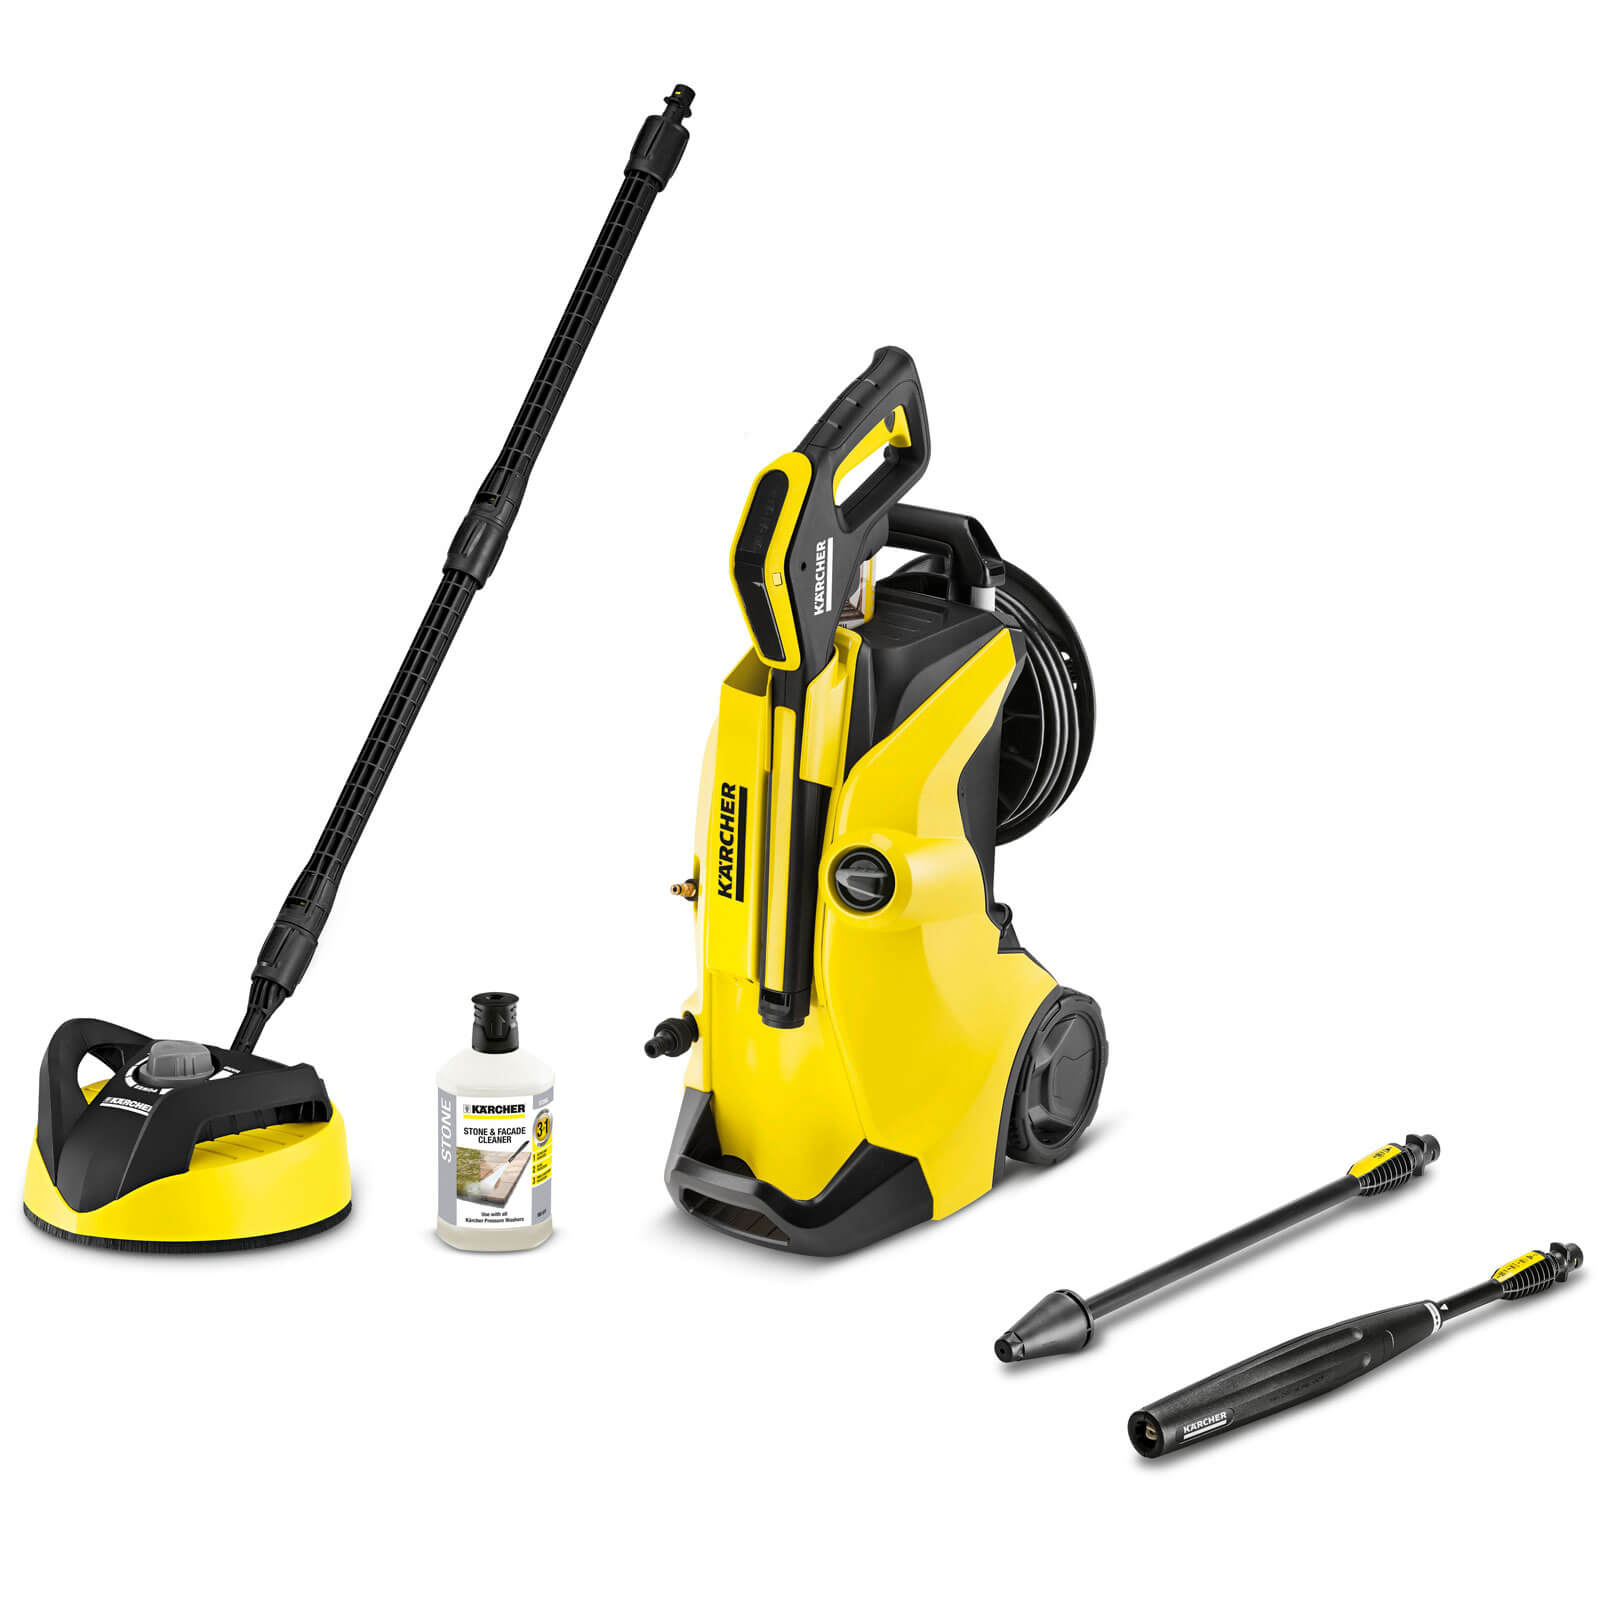 Karcher K4 Premium Full Control Pressure Washer 130 Bar 240v